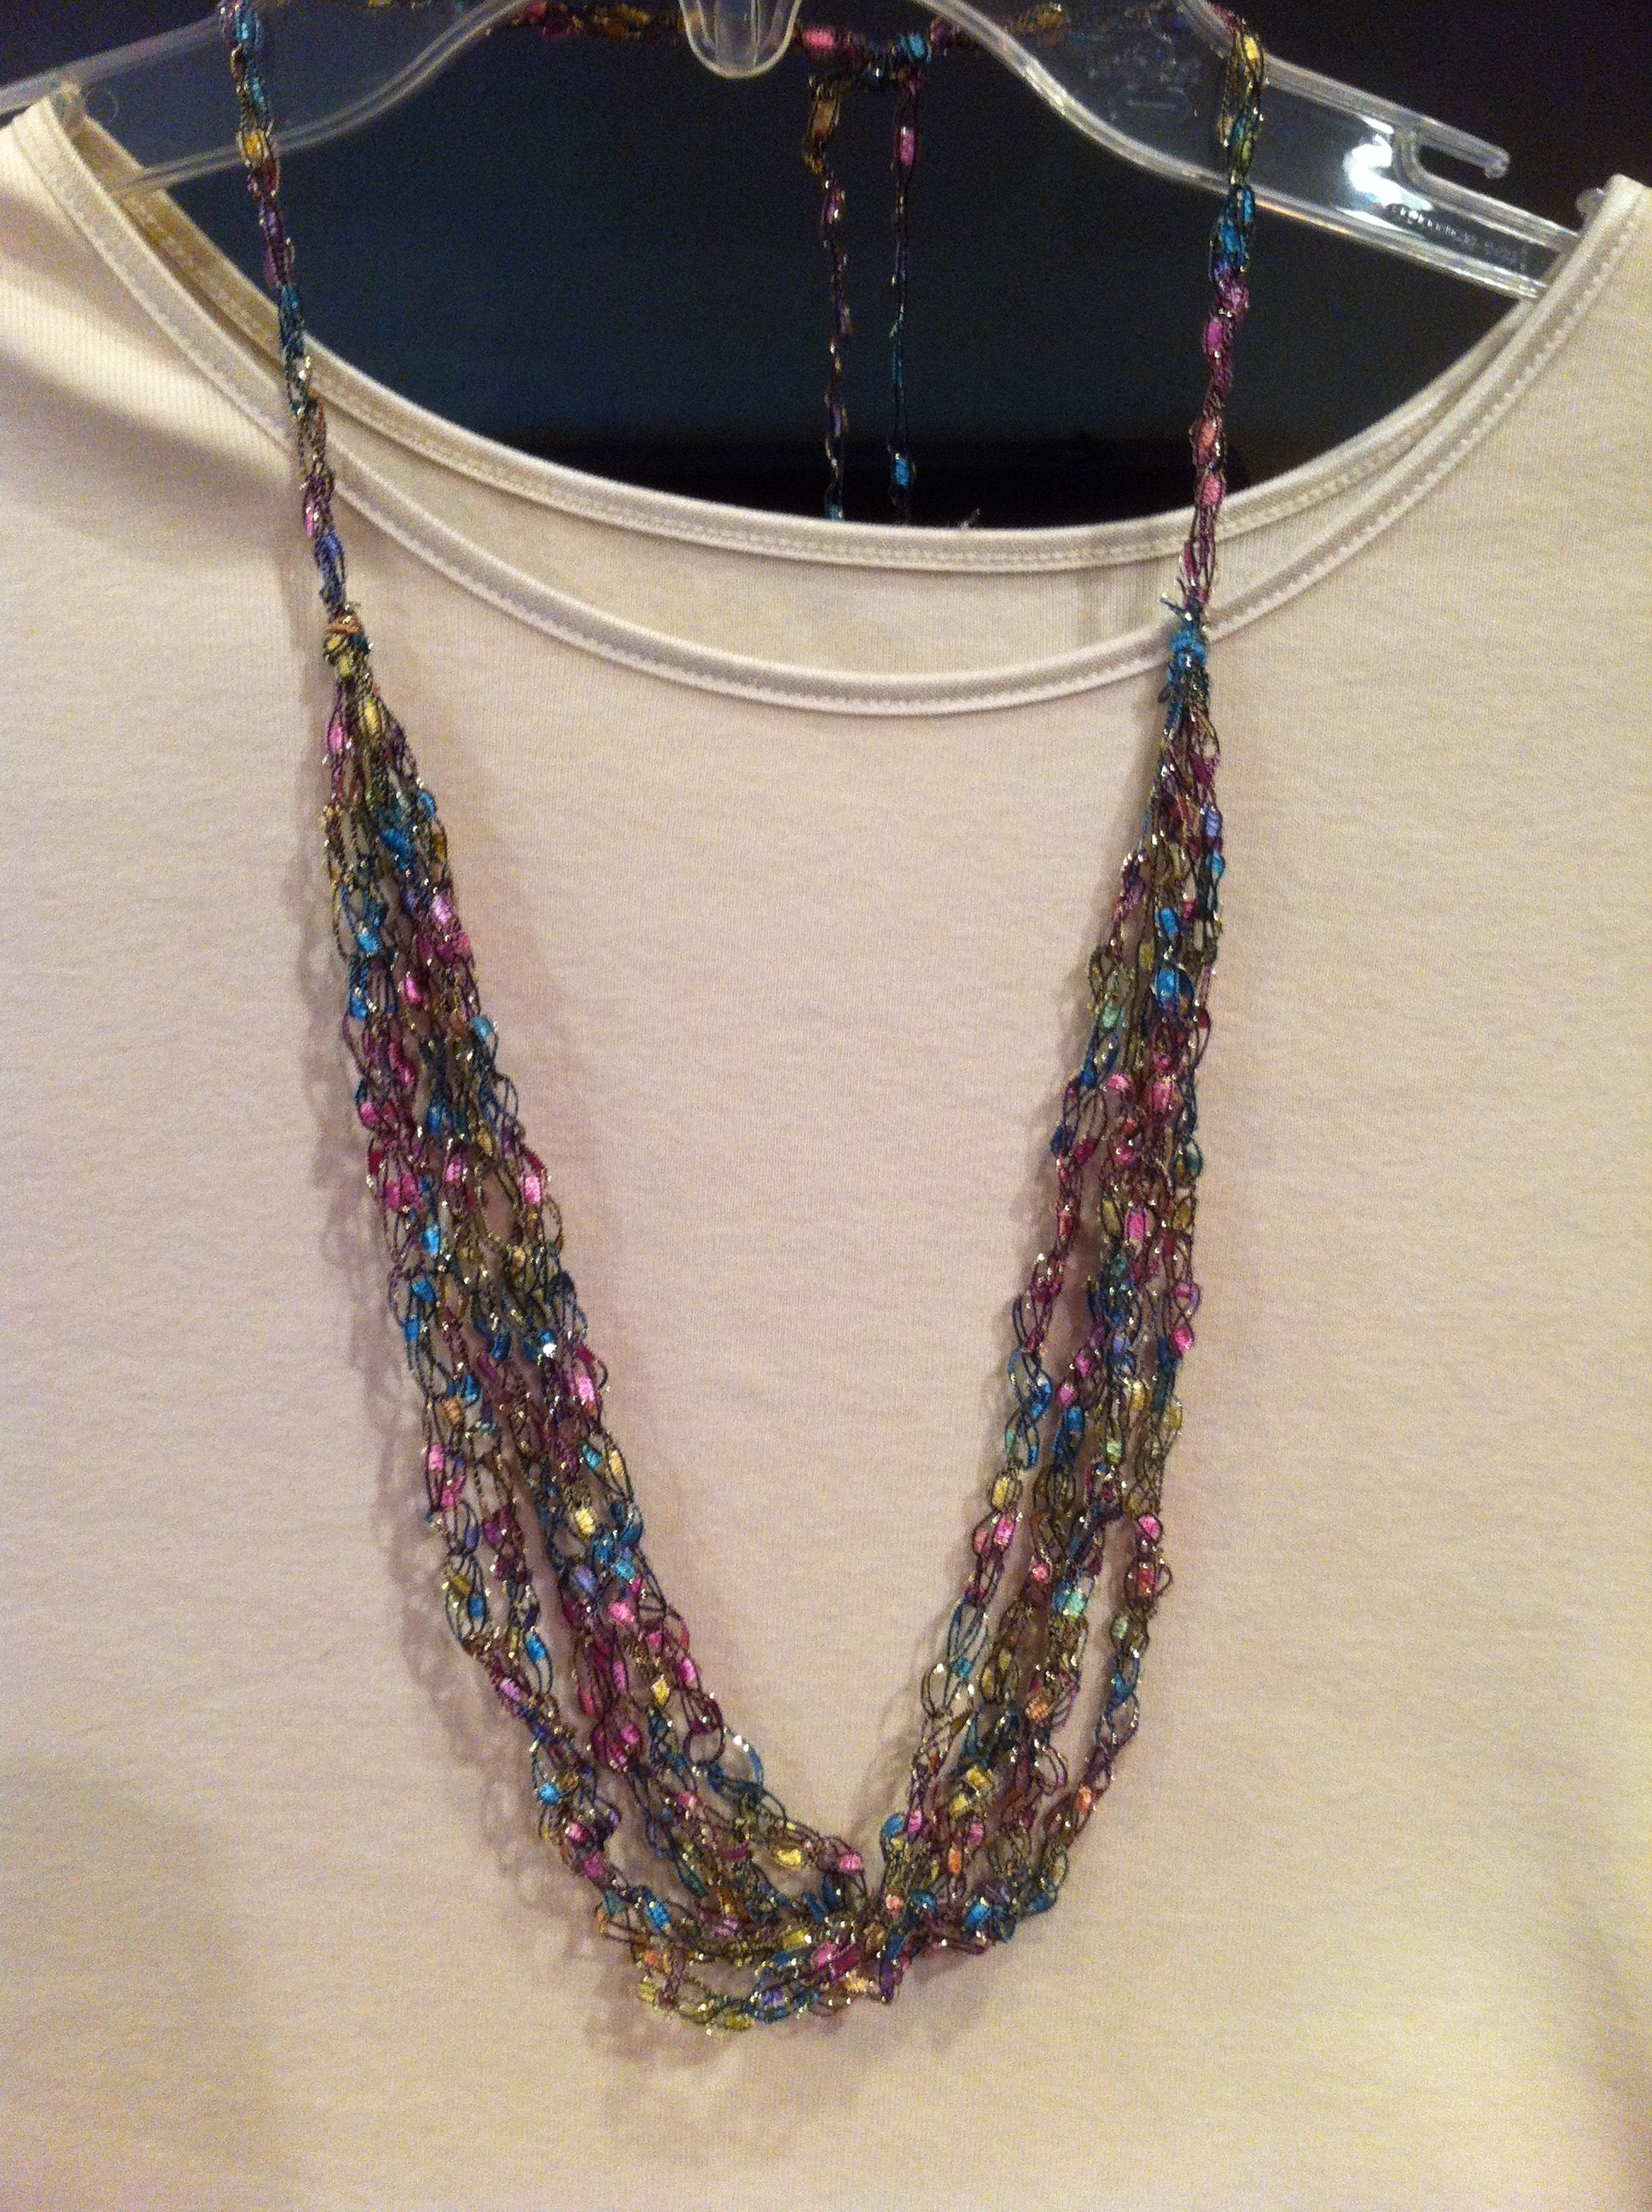 Ladder Yarn Necklace Ladder Yarn Projects Pinterest Yarns